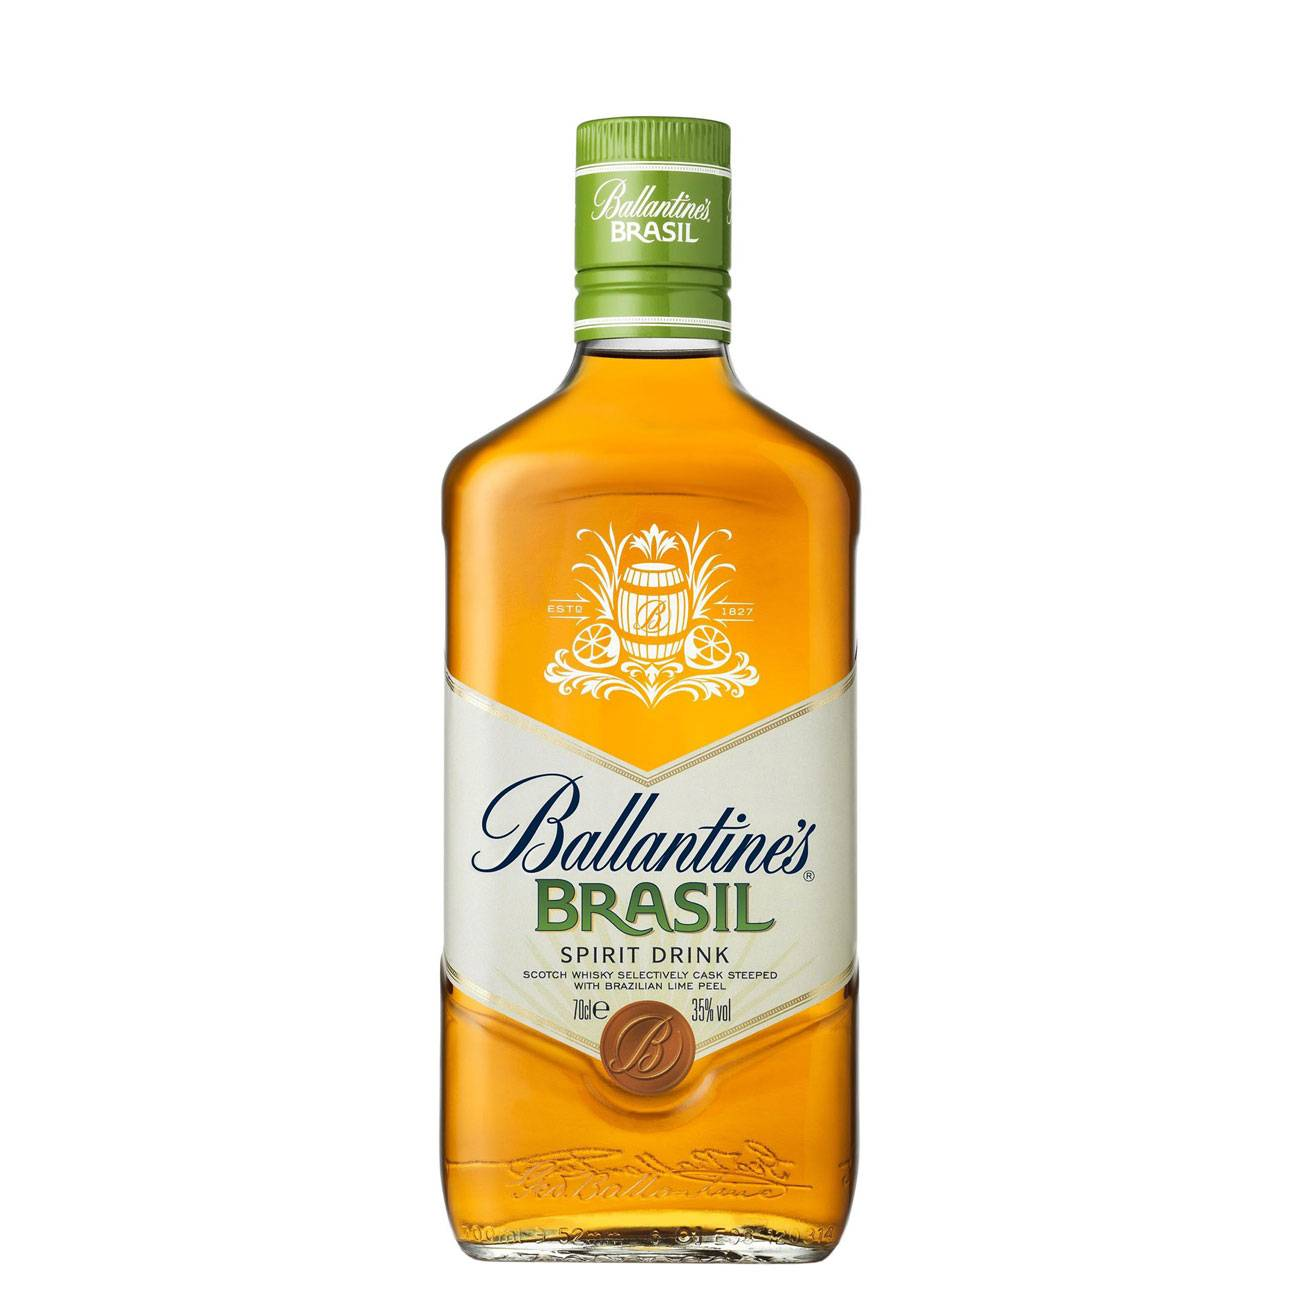 Whisky scotian, BRASIL 700 ML, Ballantine's